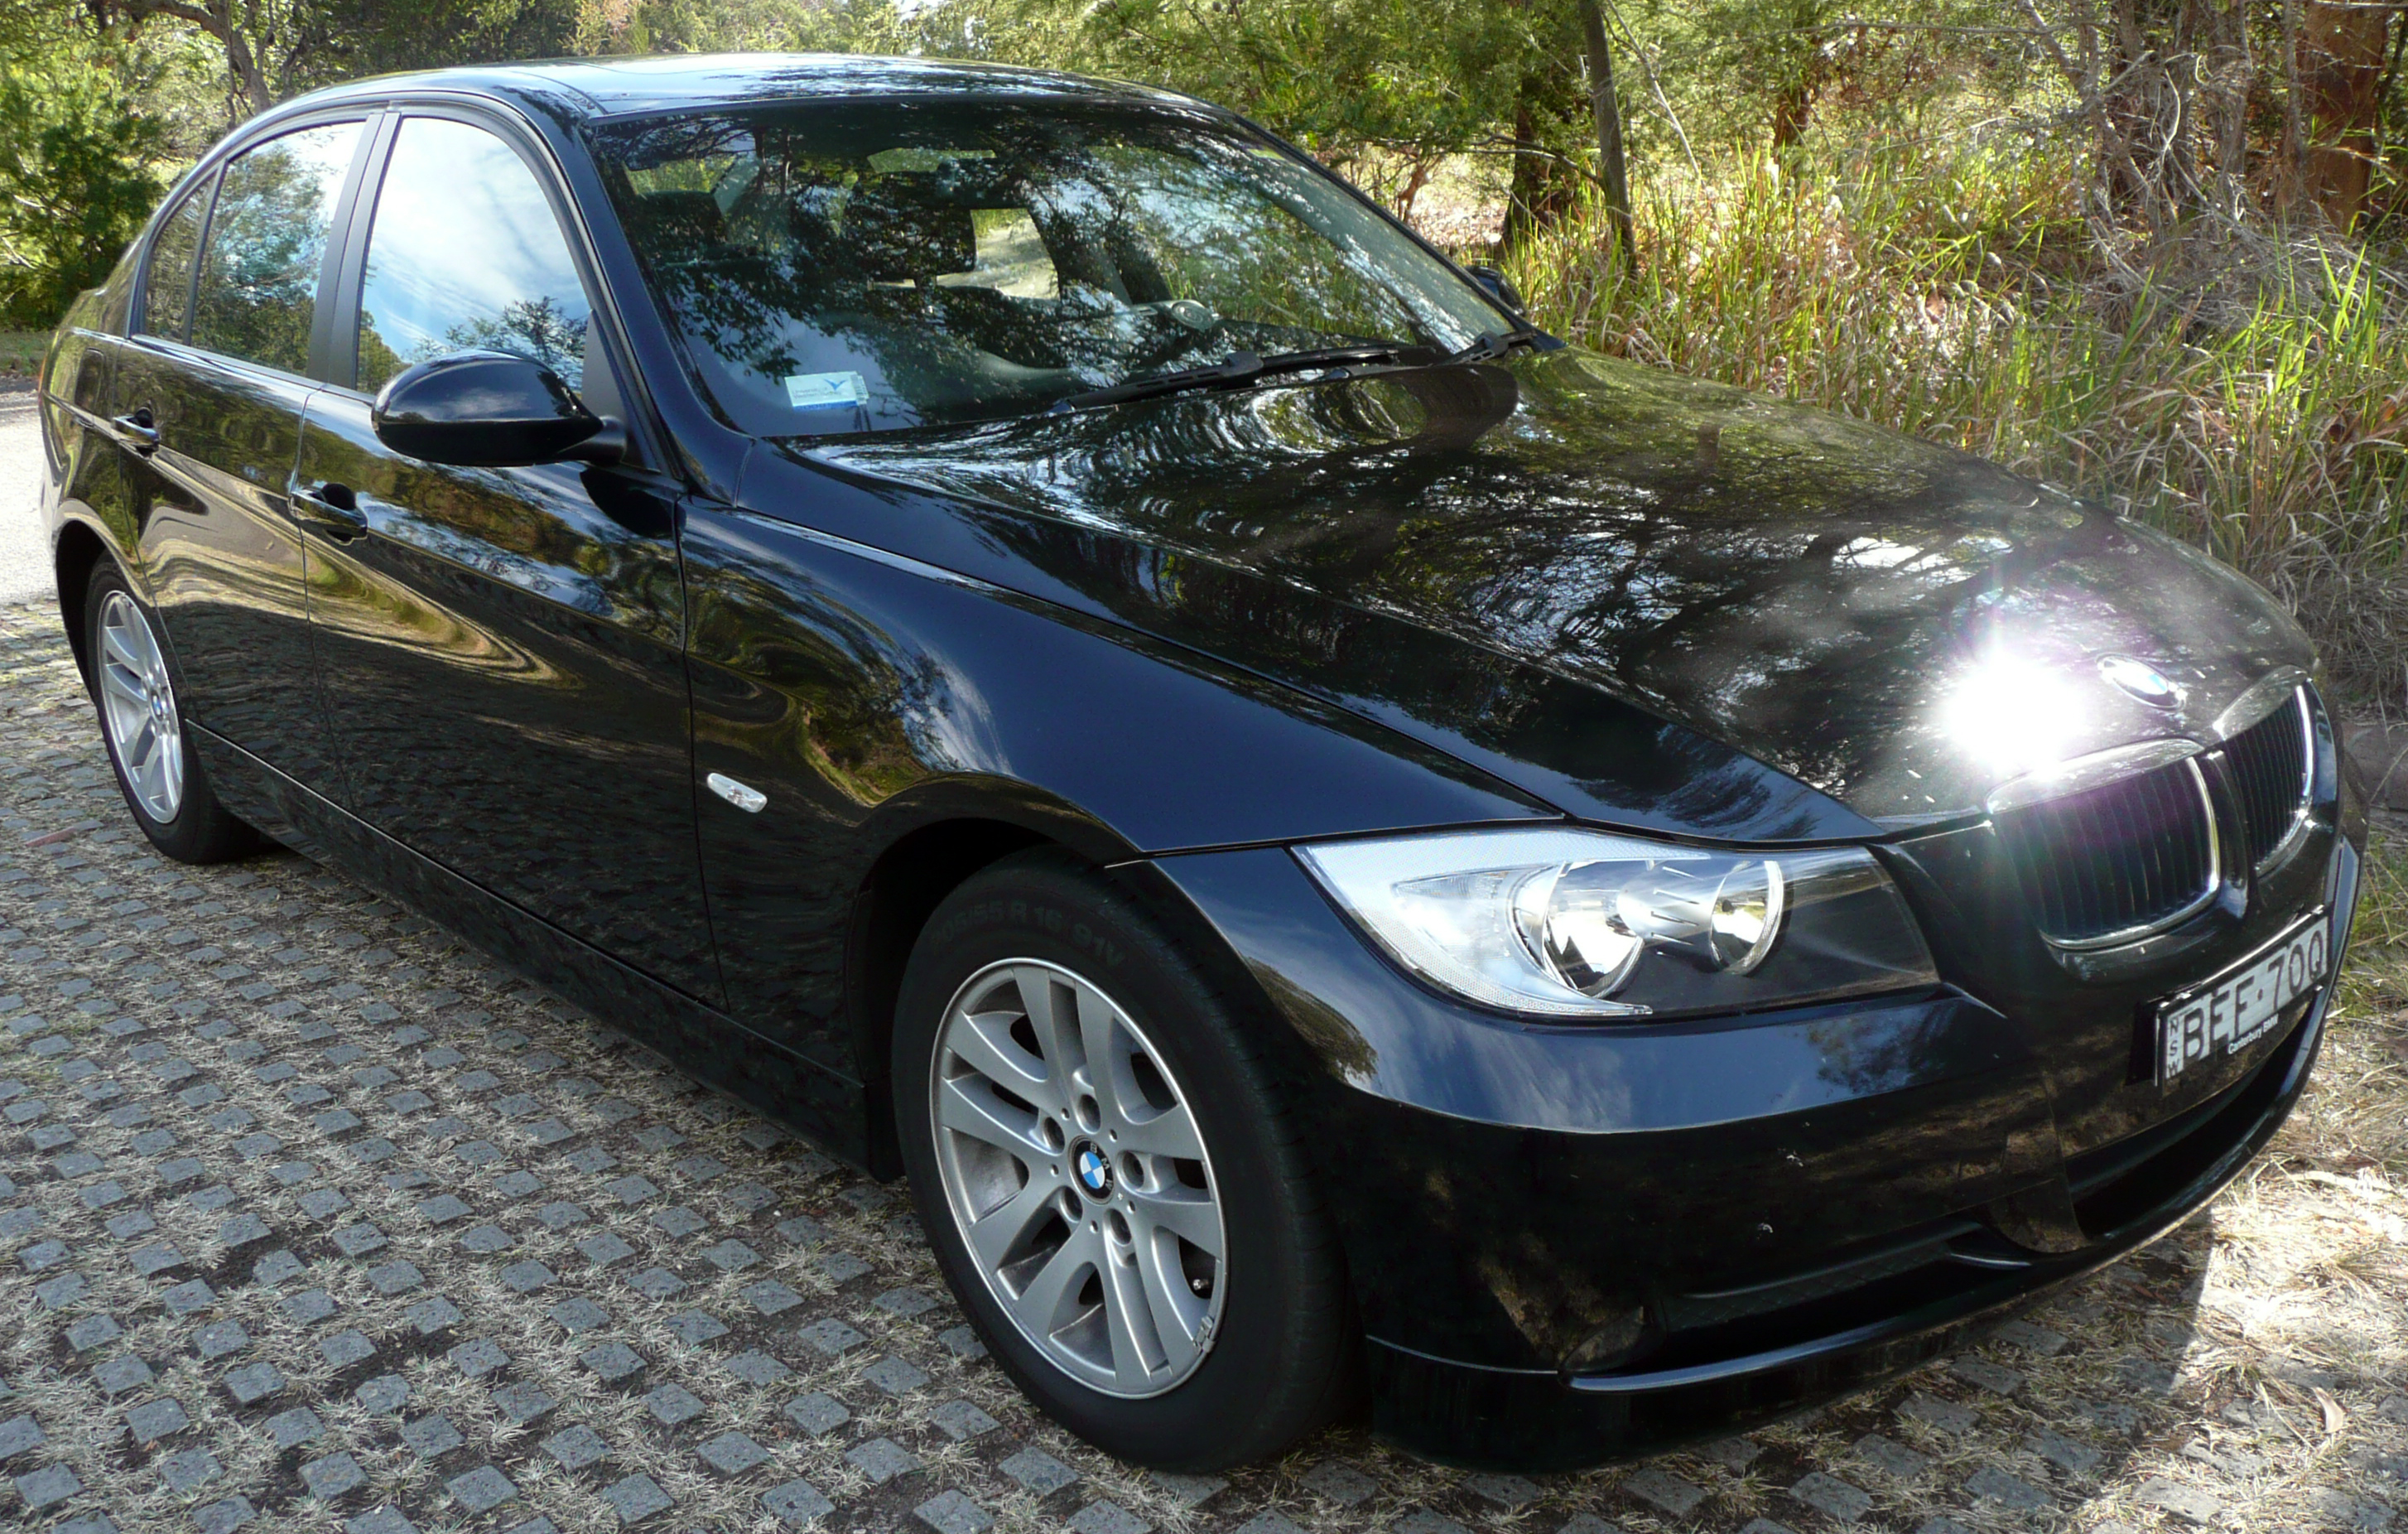 Bmw E90 Wiki >> File:2005-2008 BMW 320i (E90) sedan 01.jpg - Wikimedia Commons